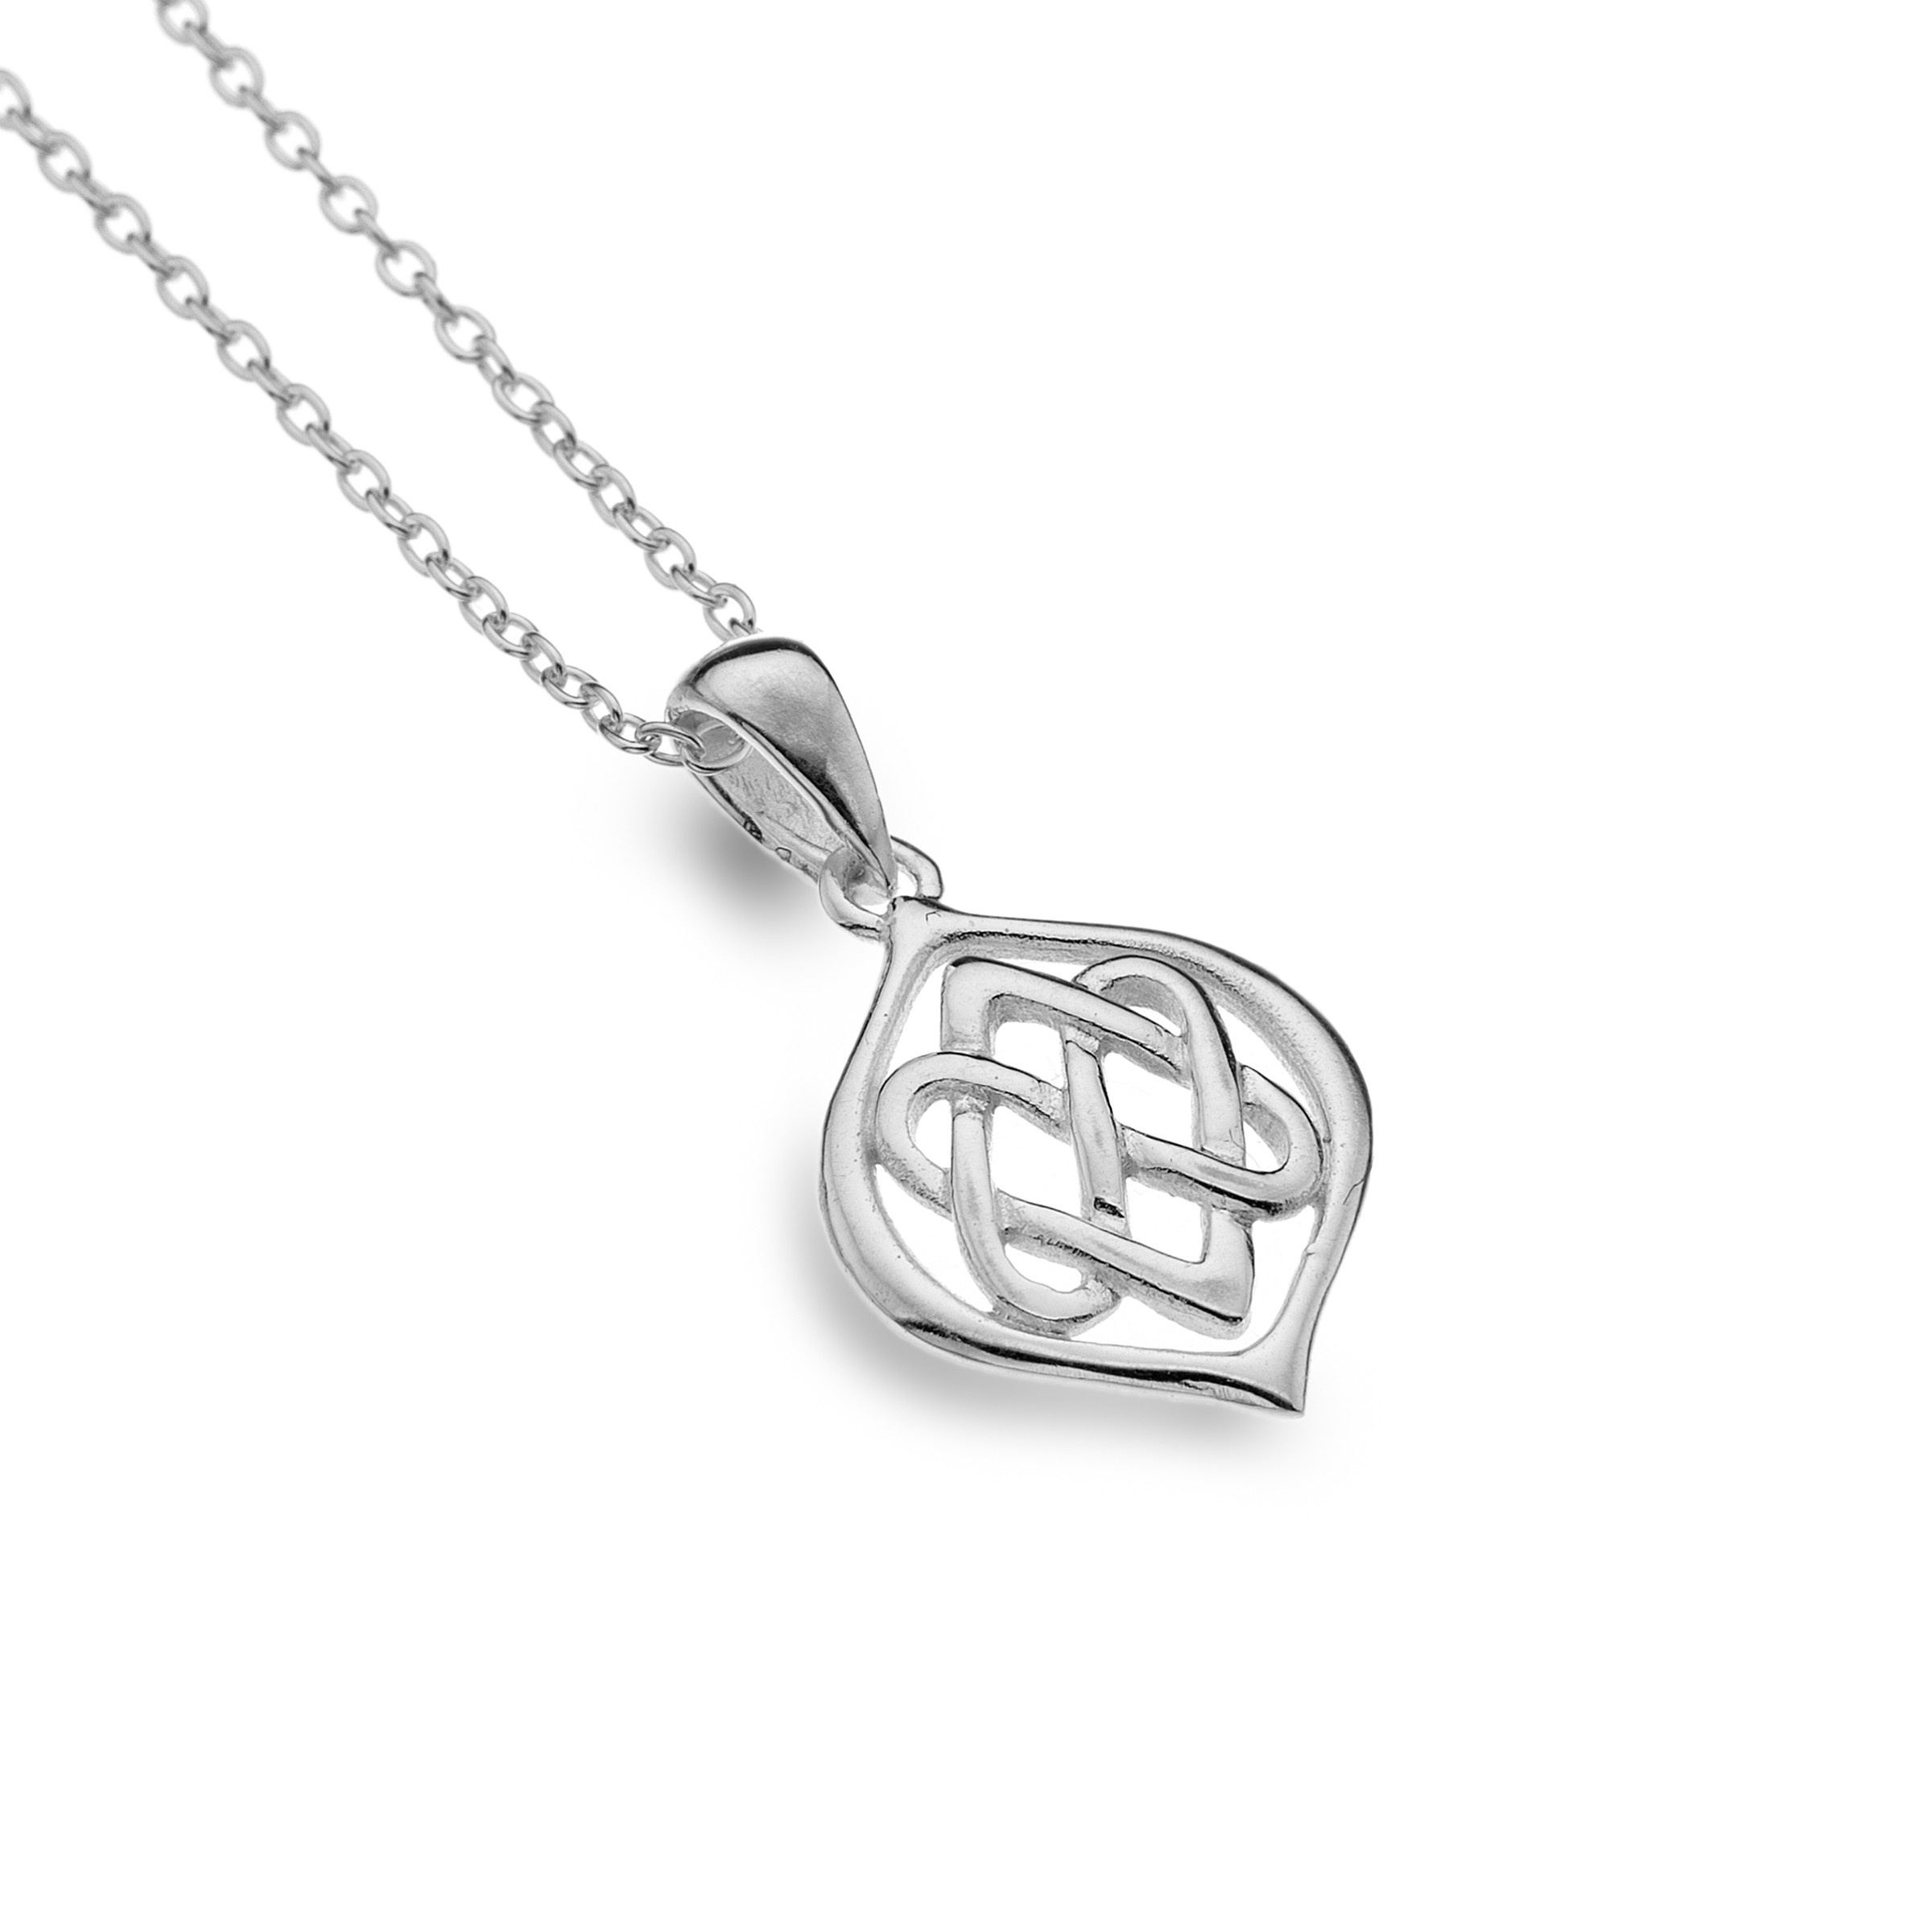 Celtic Two Hearts Entwined Sterling Silver Pendant Necklace